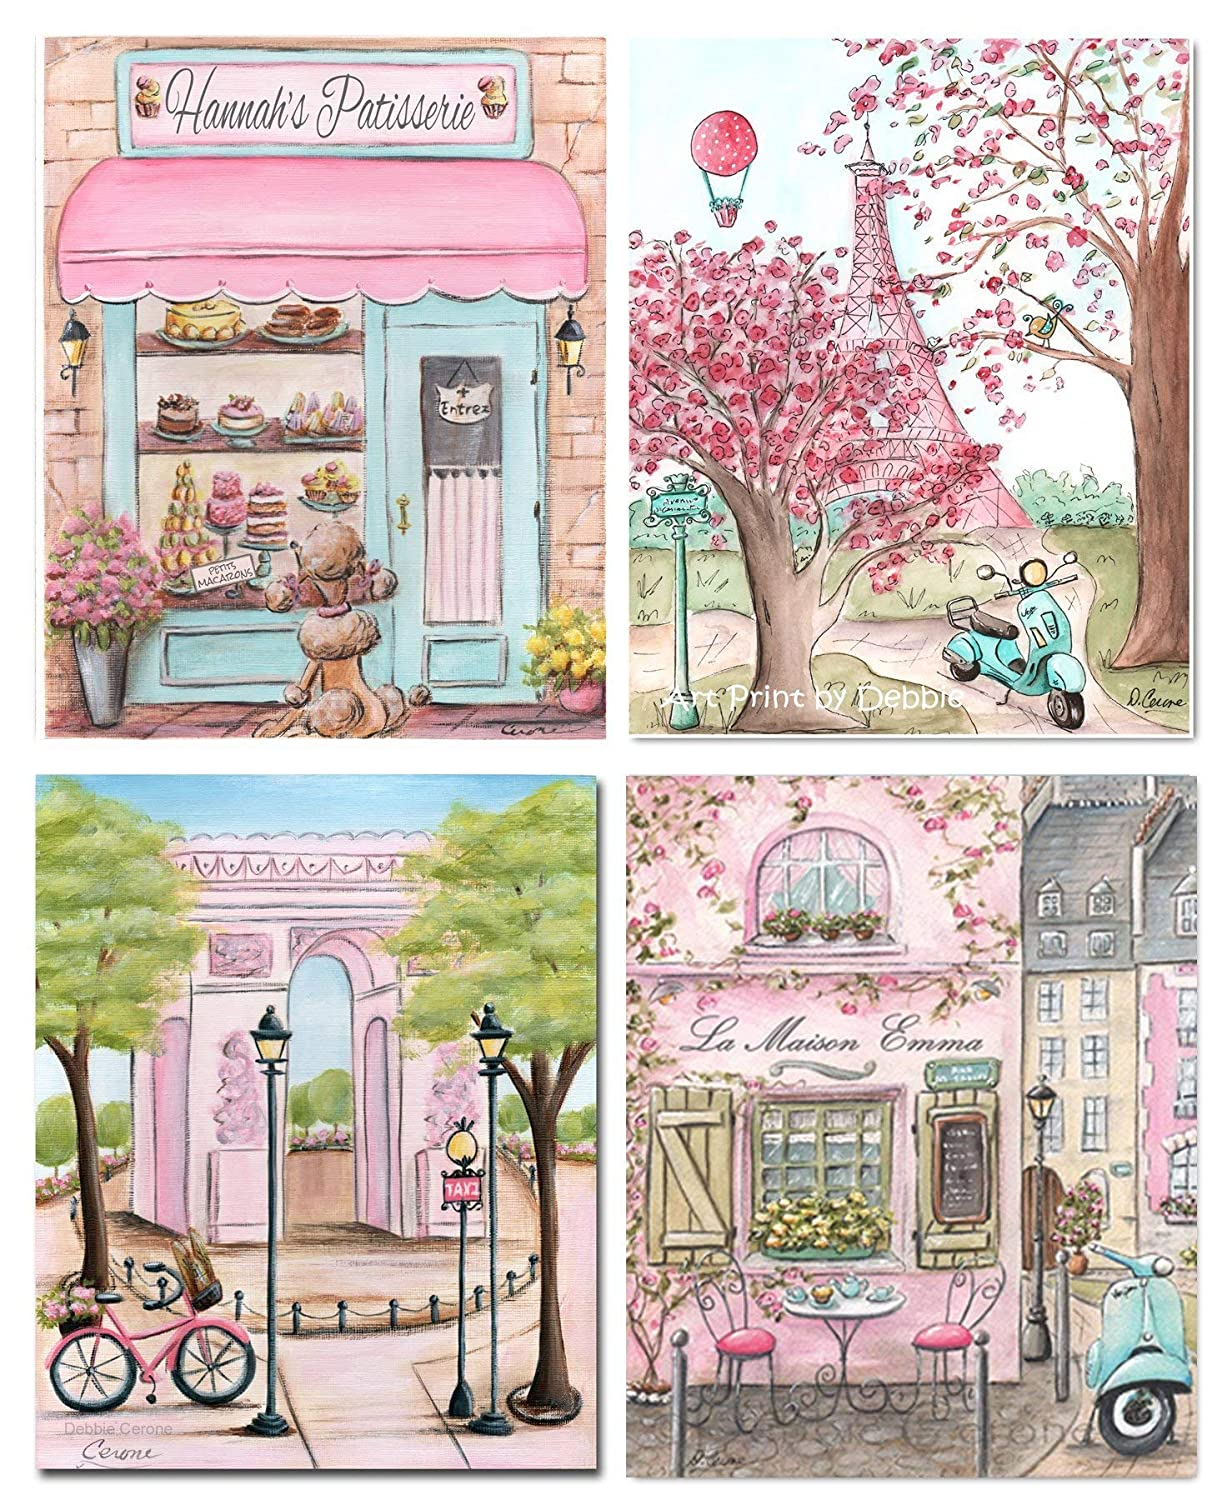 Amazon.com: Pink Paris Themed Bedroom Decor For Girls Room ...